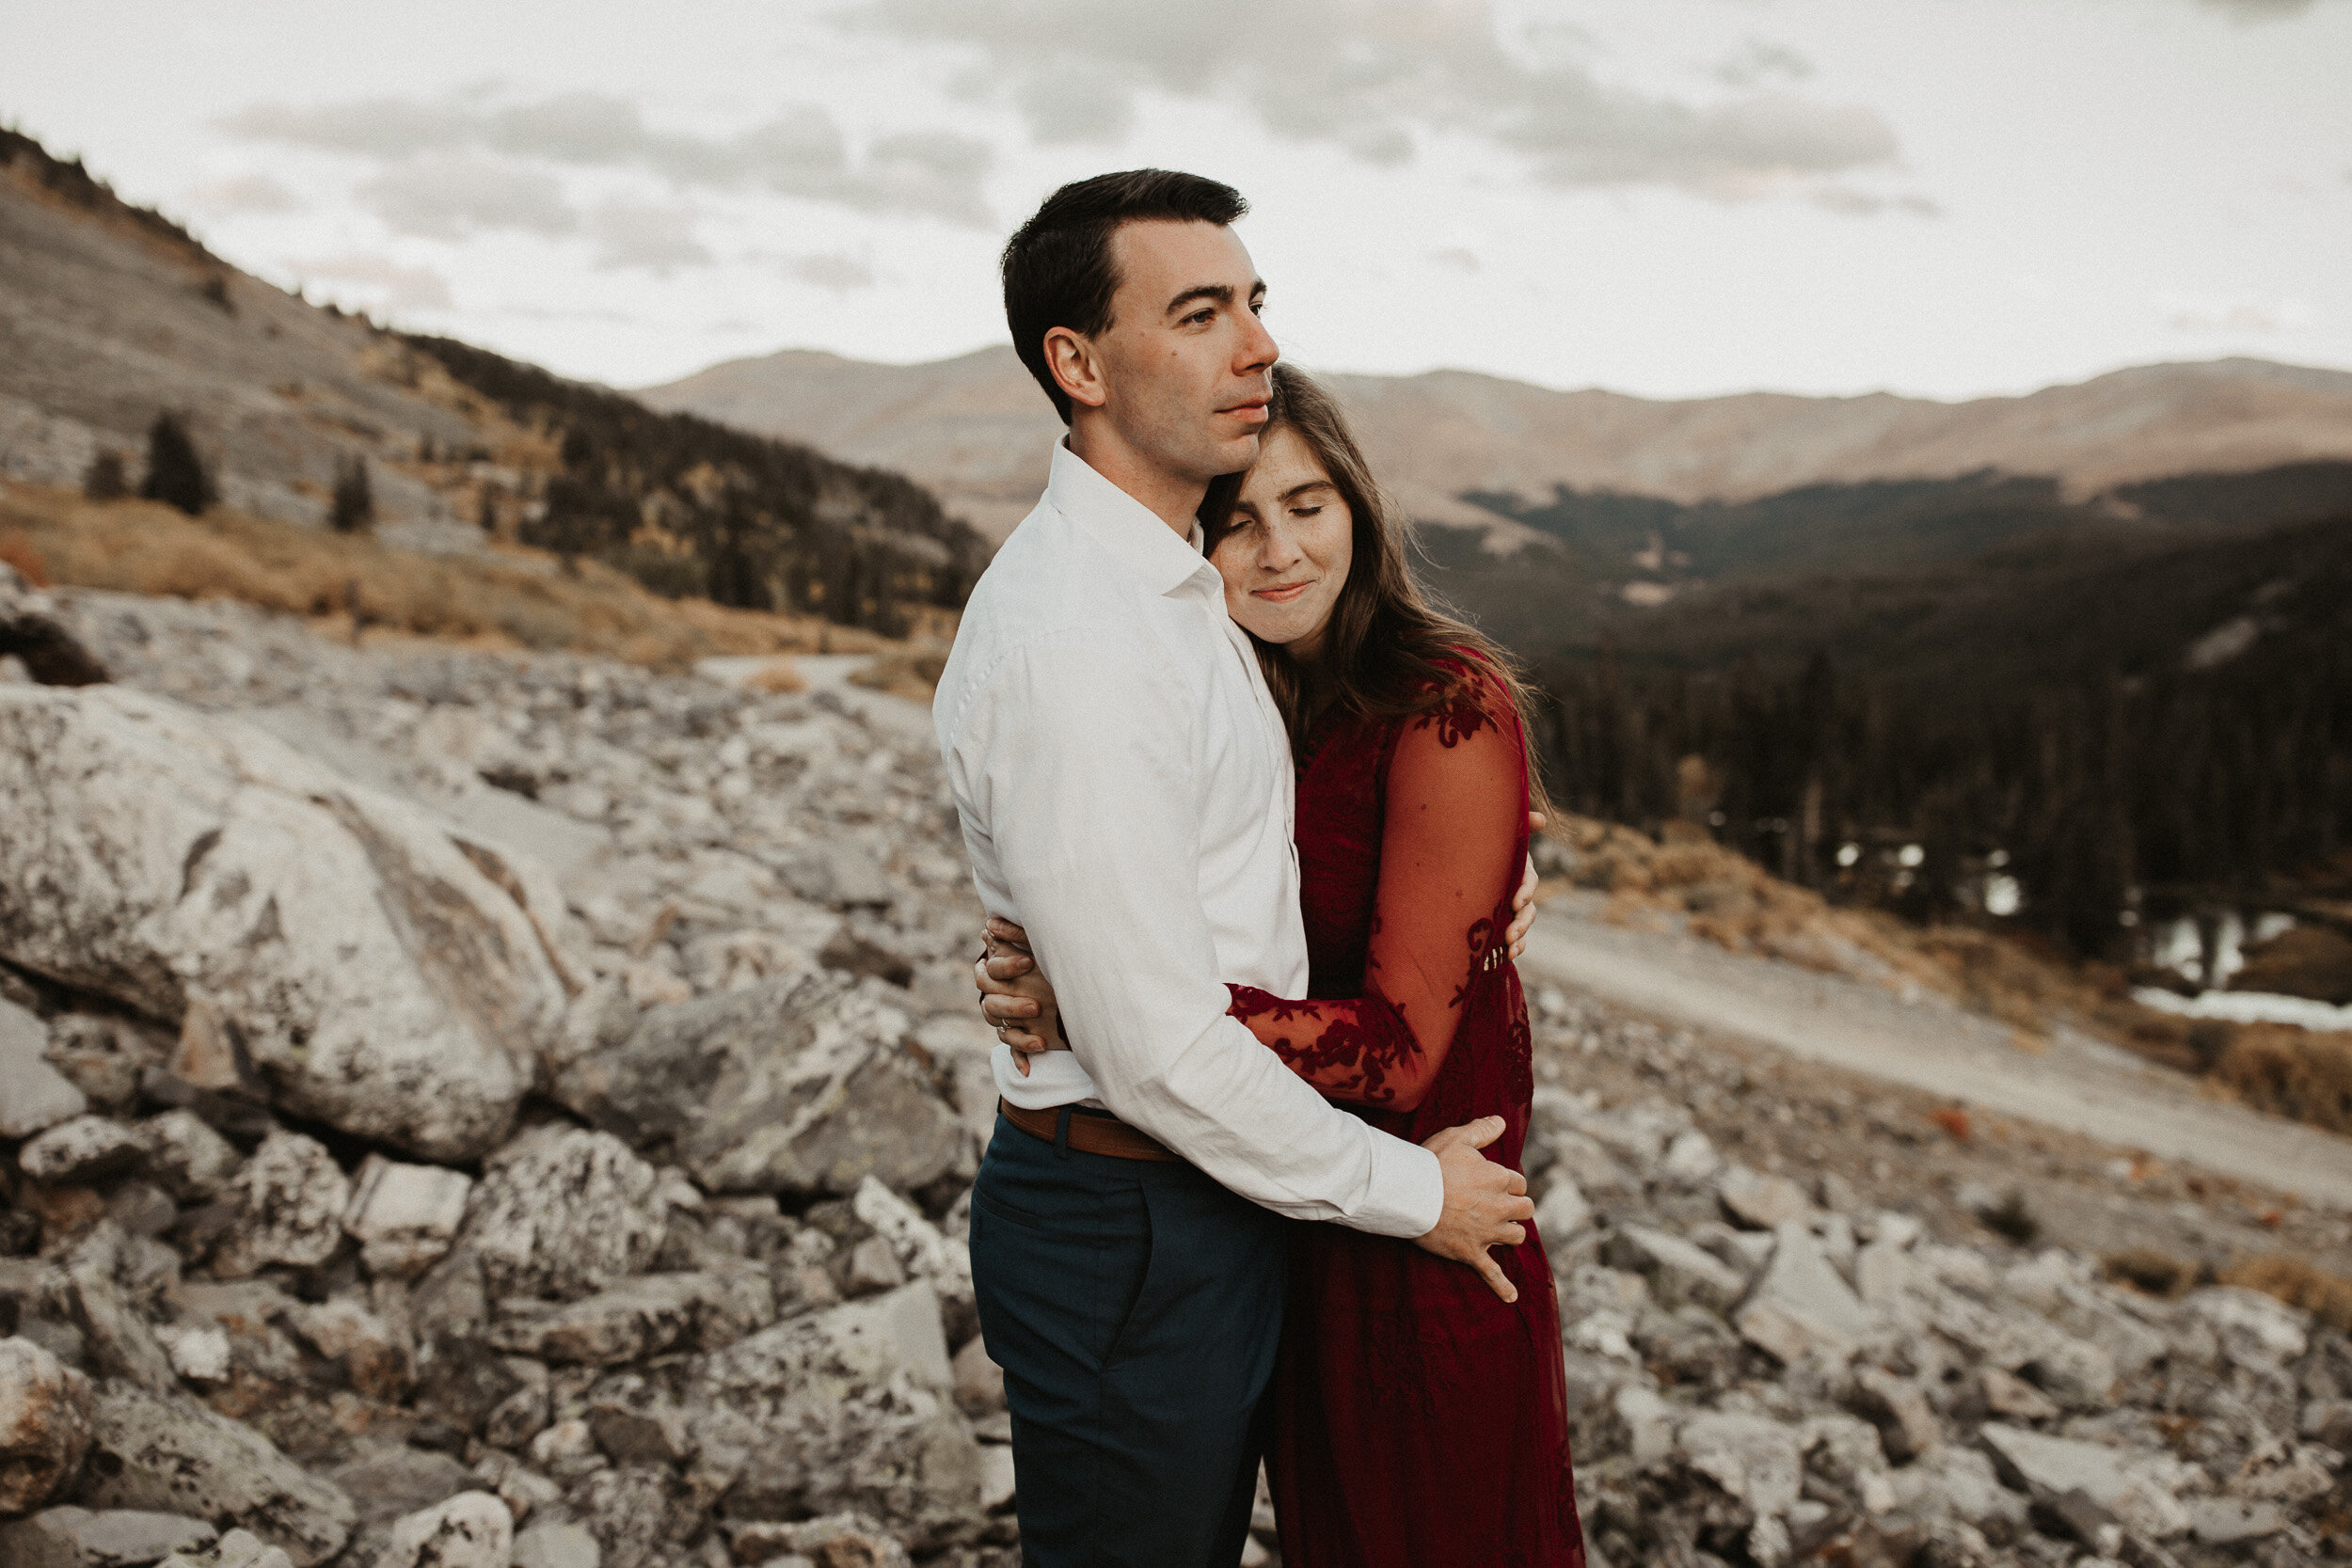 Claire_&_Matthew_Engagment_Breckenridge_Colorado_Fall_0614-Edit.jpg